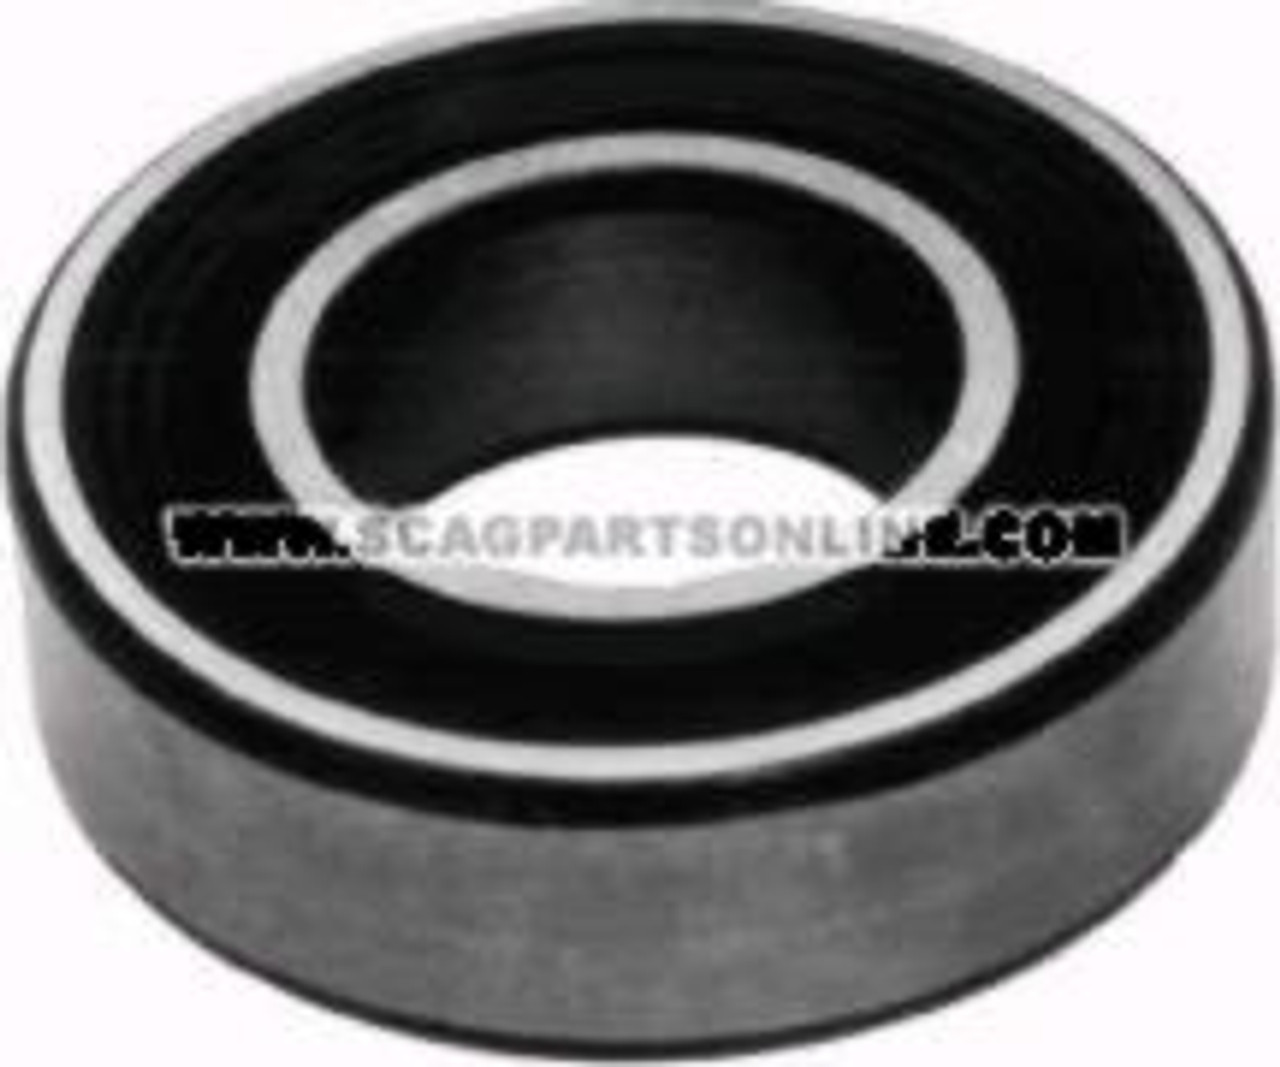 Image of BEARING, 2.04 OD X 1.00 ID part number 483466 for Scag.